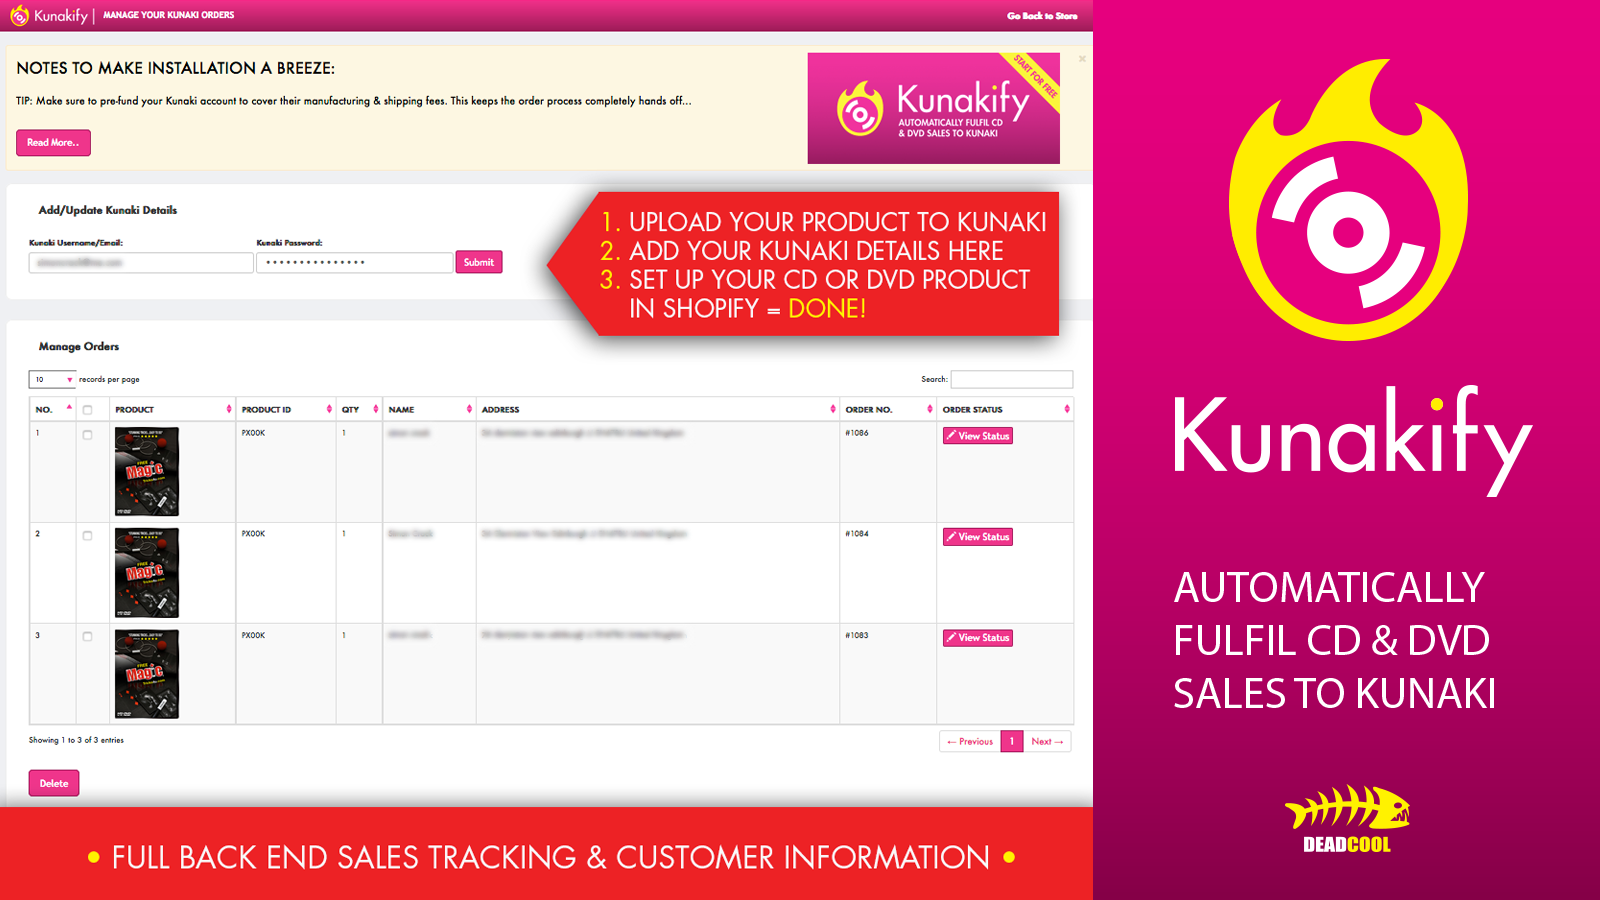 Full back end sales tracking and customer information